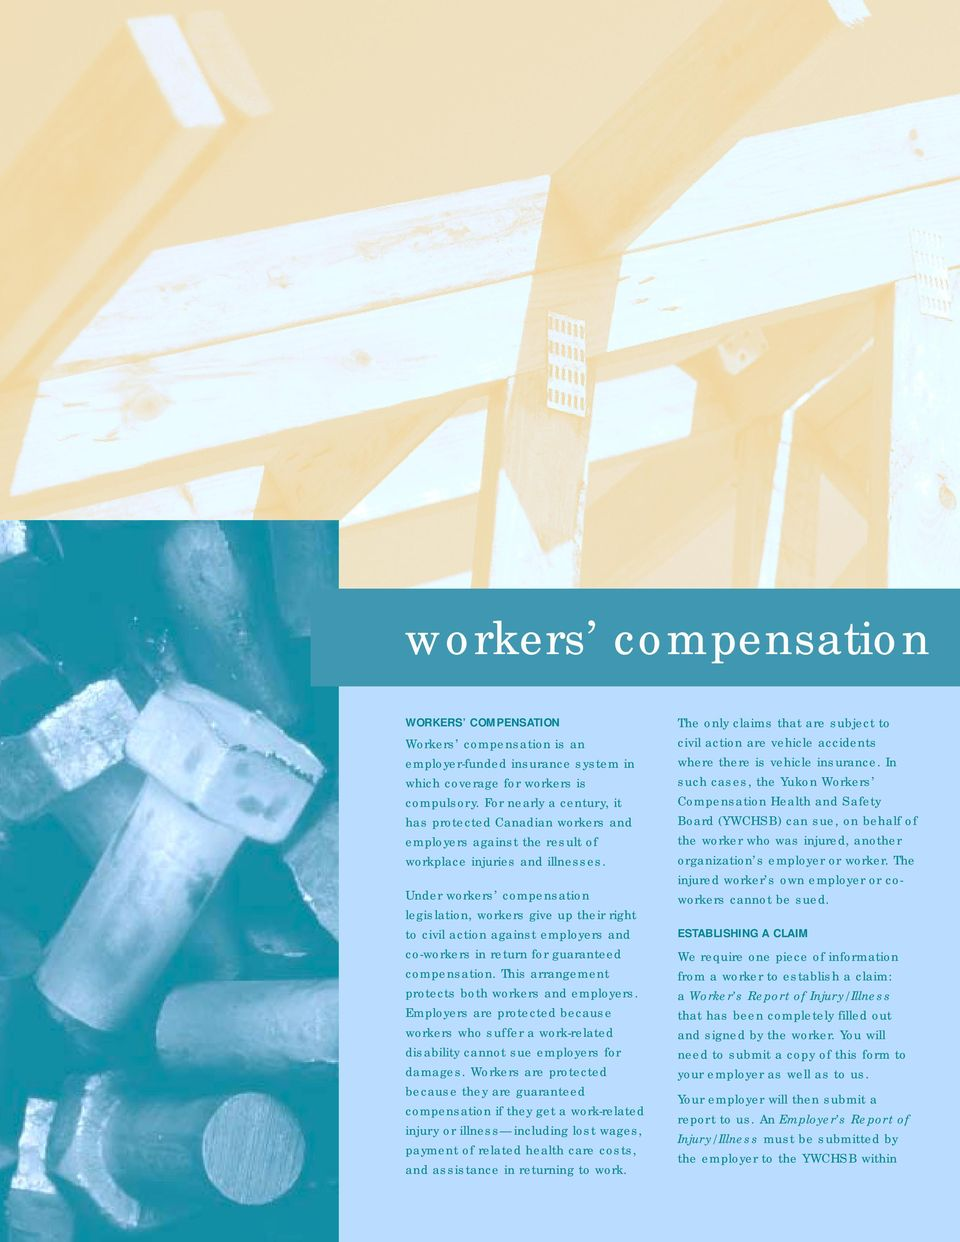 Under workers compensation legislation, workers give up their right to civil action against employers and co-workers in return for guaranteed compensation.